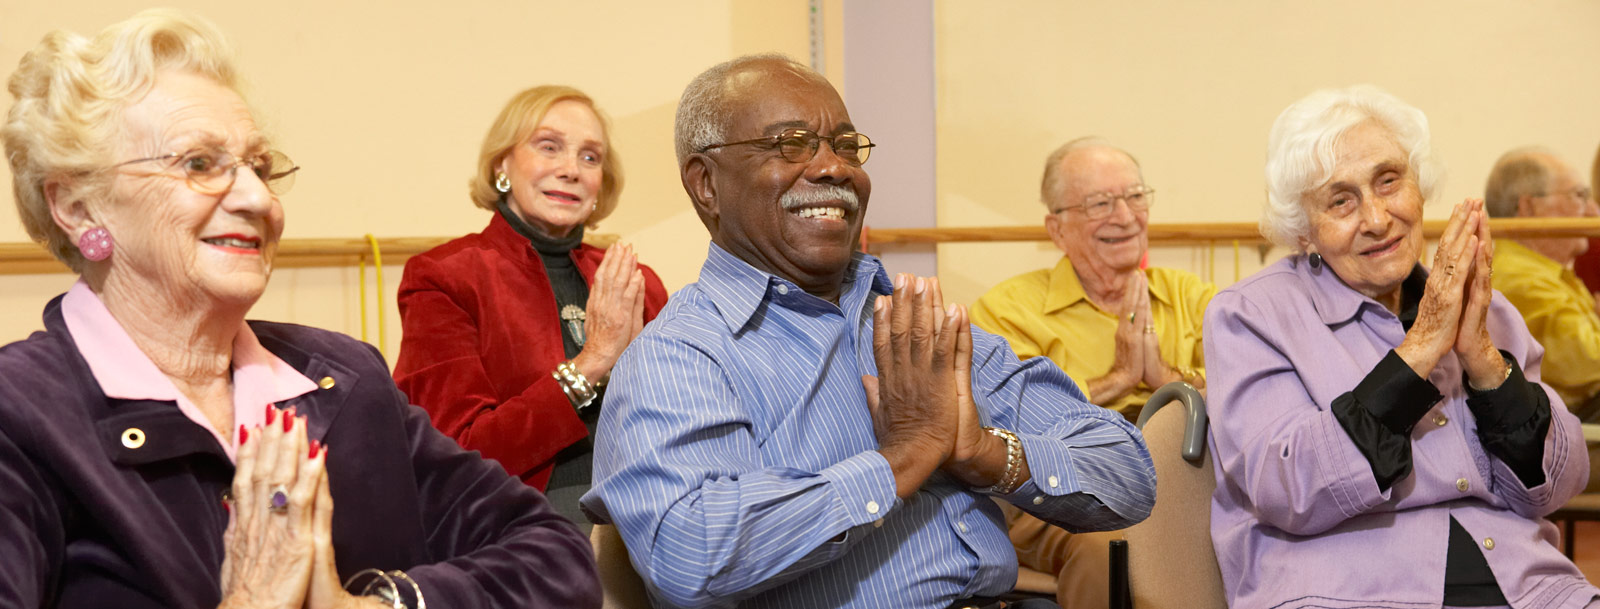 Senior living in Emporia cares about your health and wellness